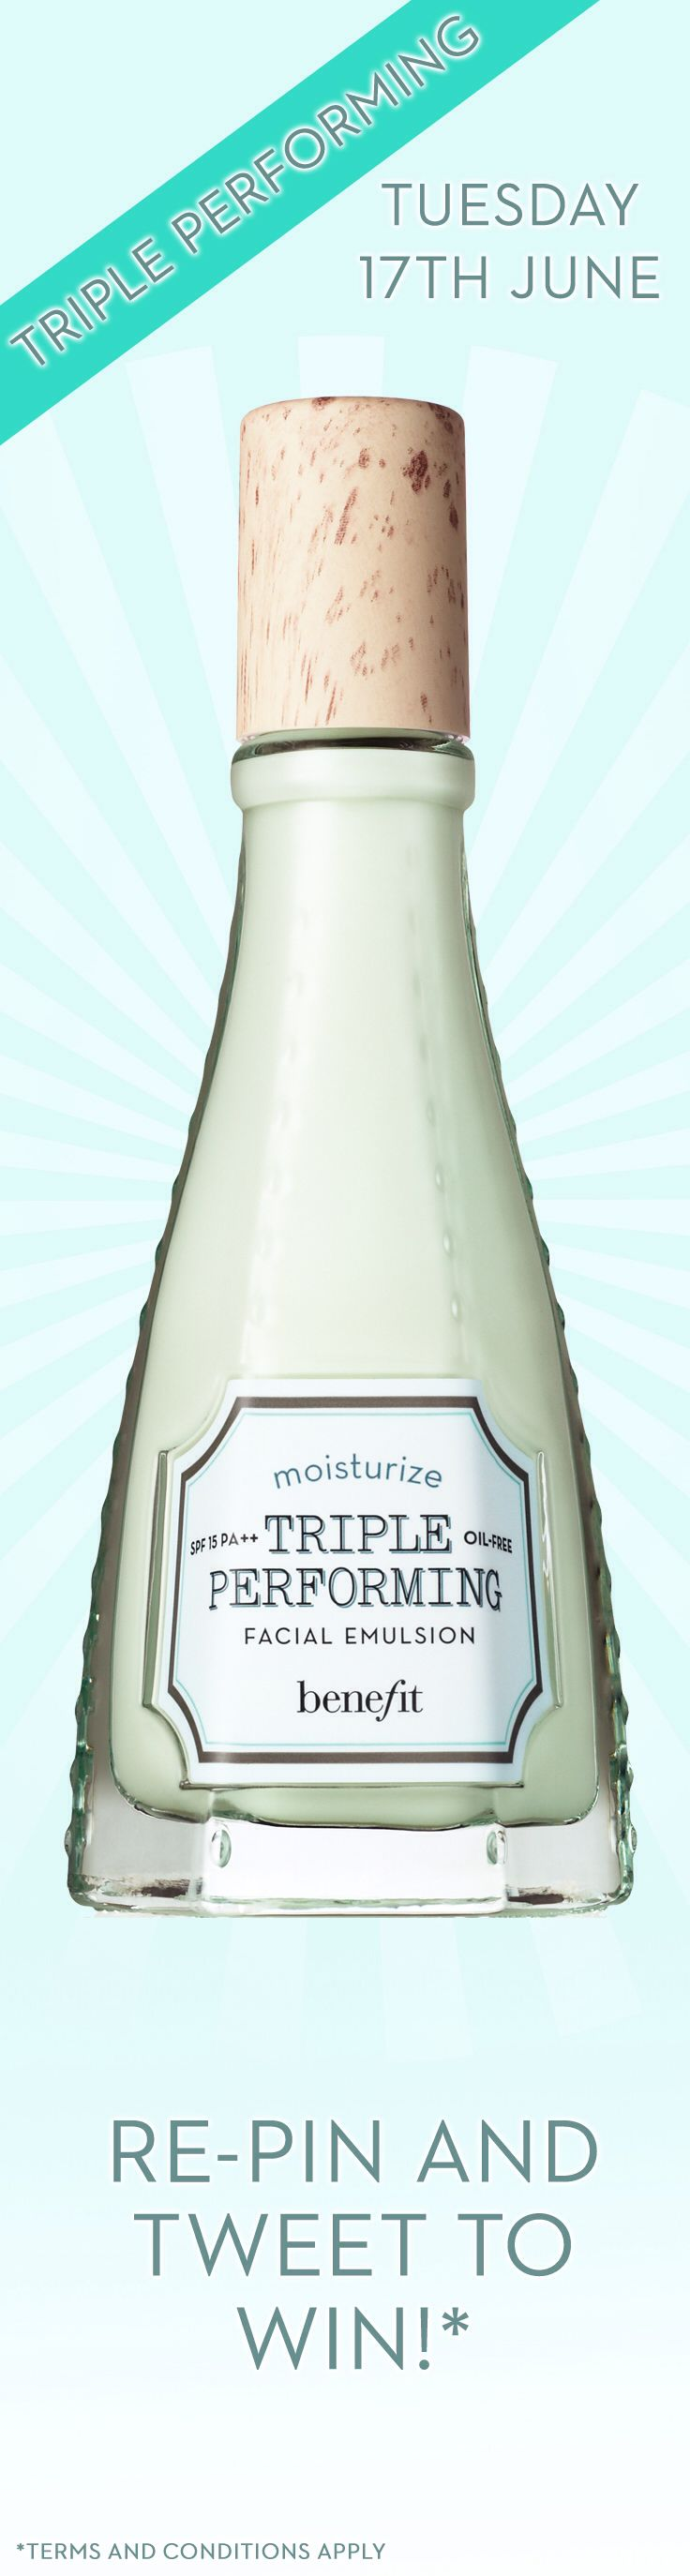 triple performing is triple the amazing! Re-pin to win Benebabes! #itsimplyworks